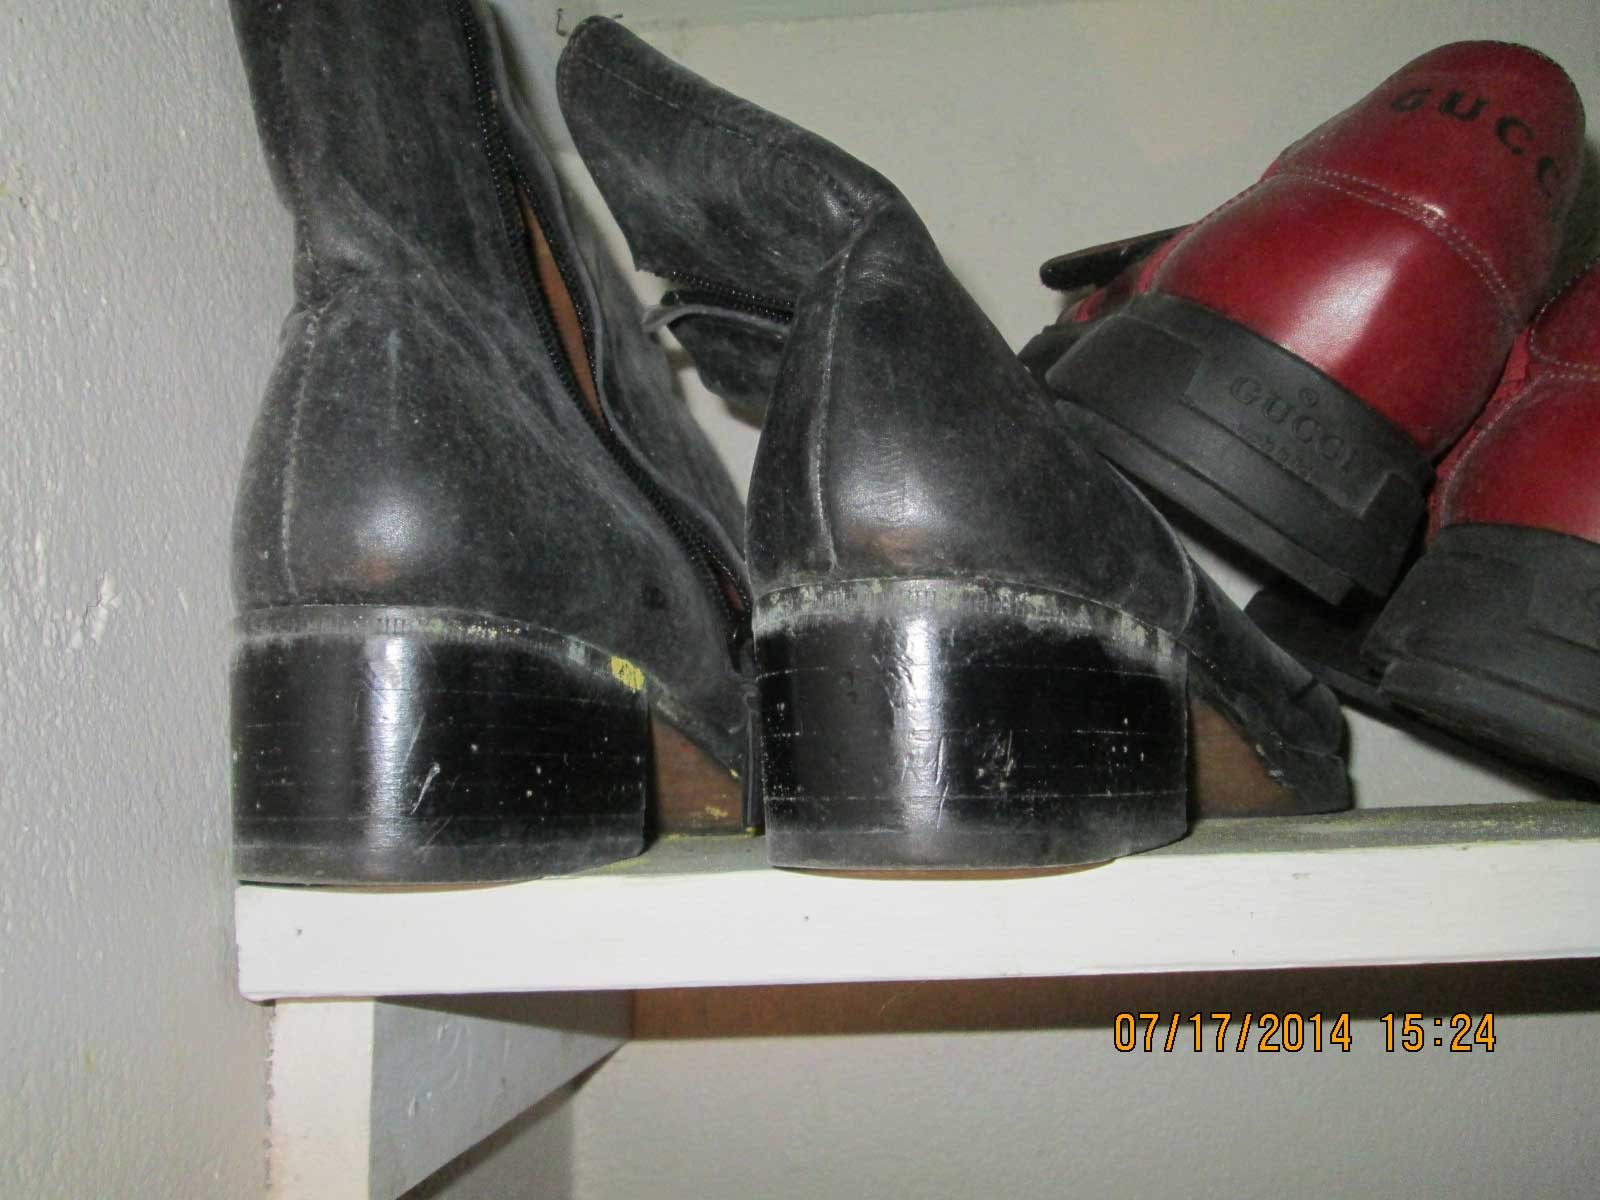 Mold buildup on a pair of boots